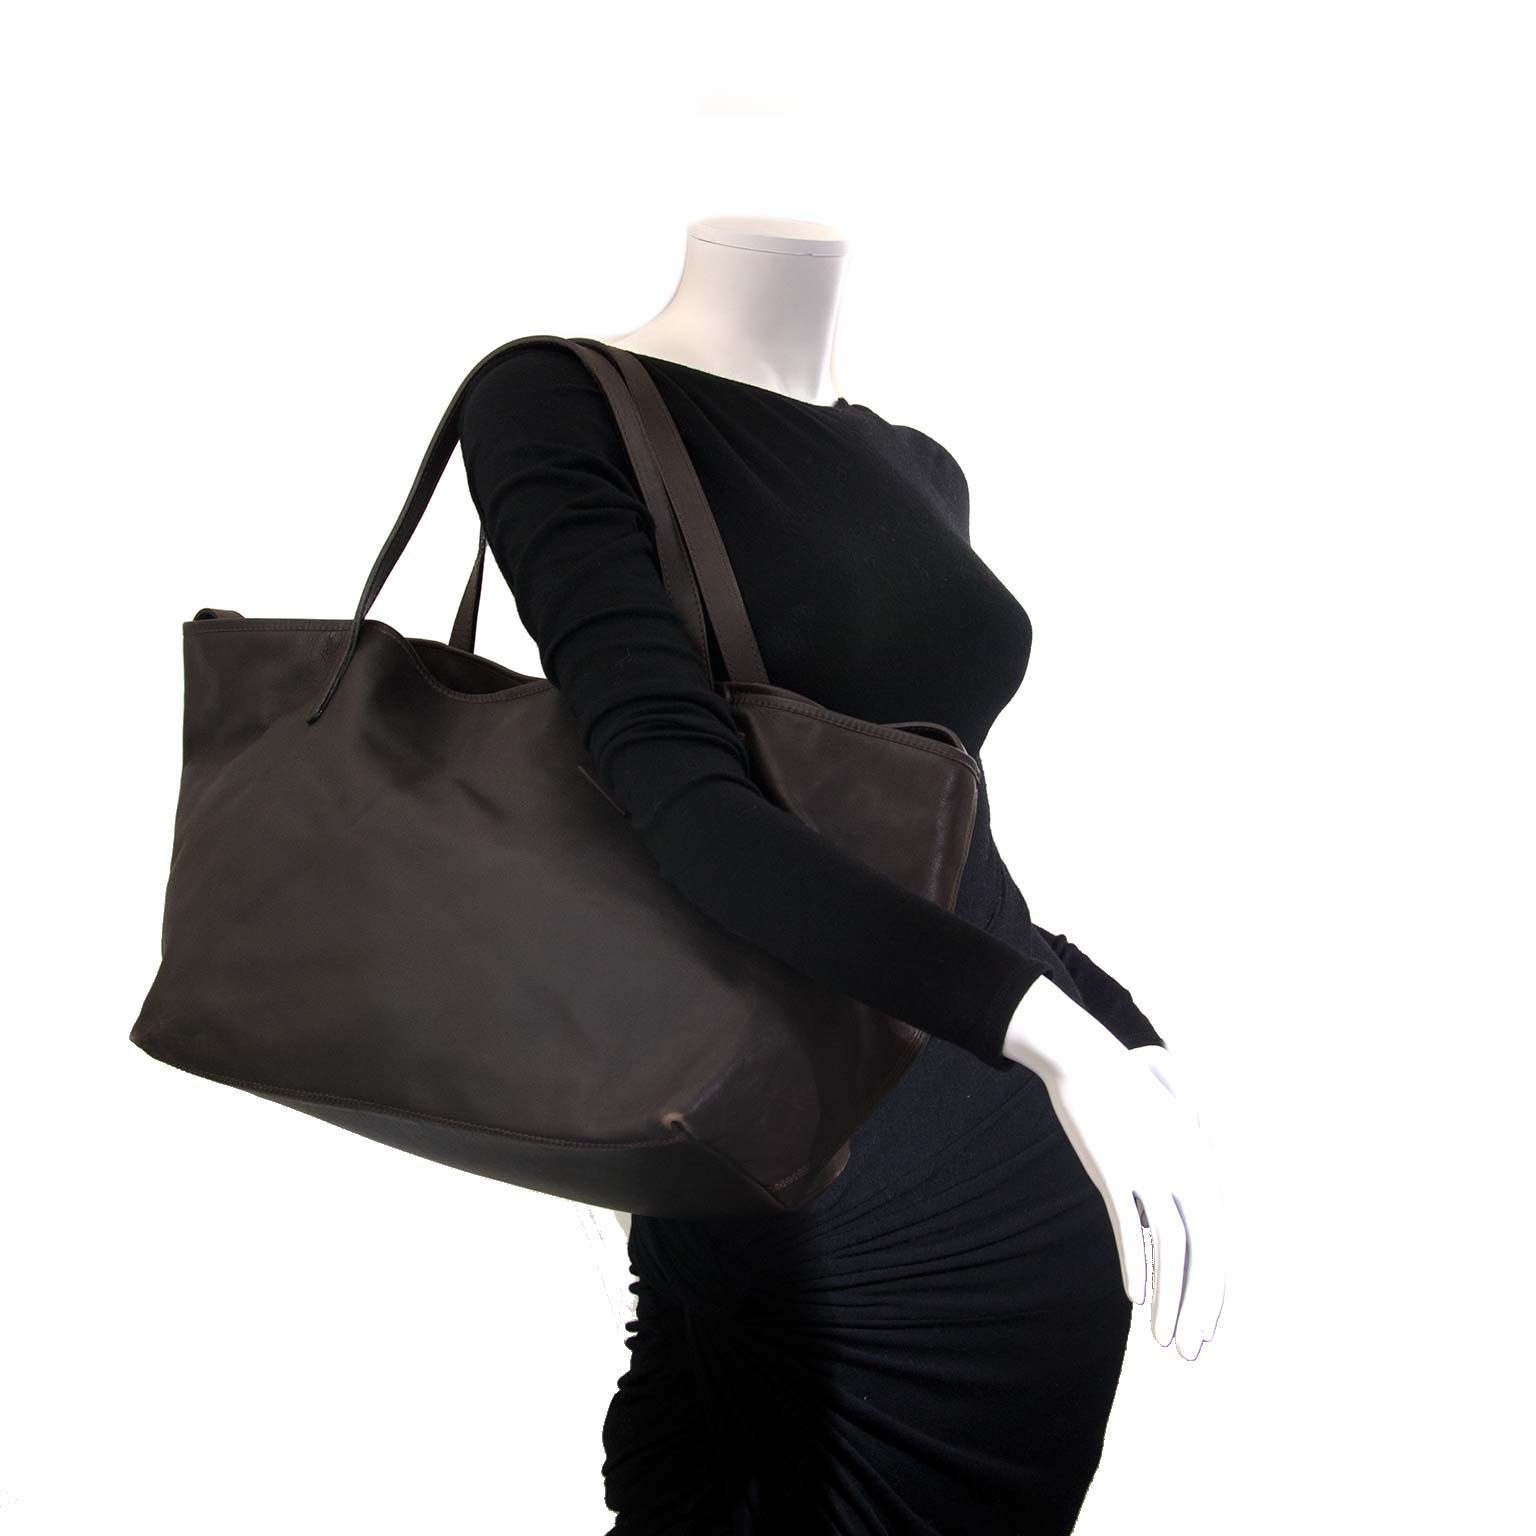 d10bee0616f5 ... Max Mara Brown Leather Tote Bag now for sale at labellov vintage  fashion webshop belgium